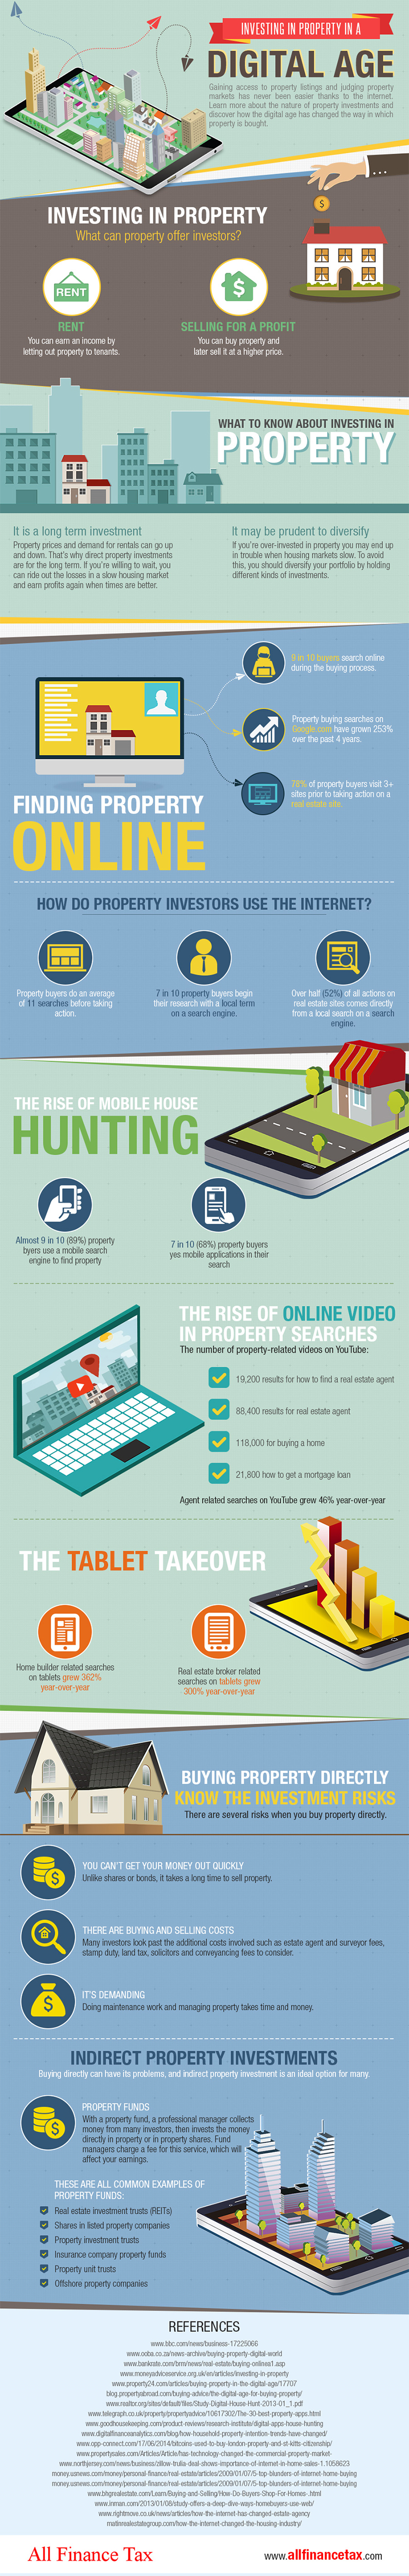 real estate digital age infographic